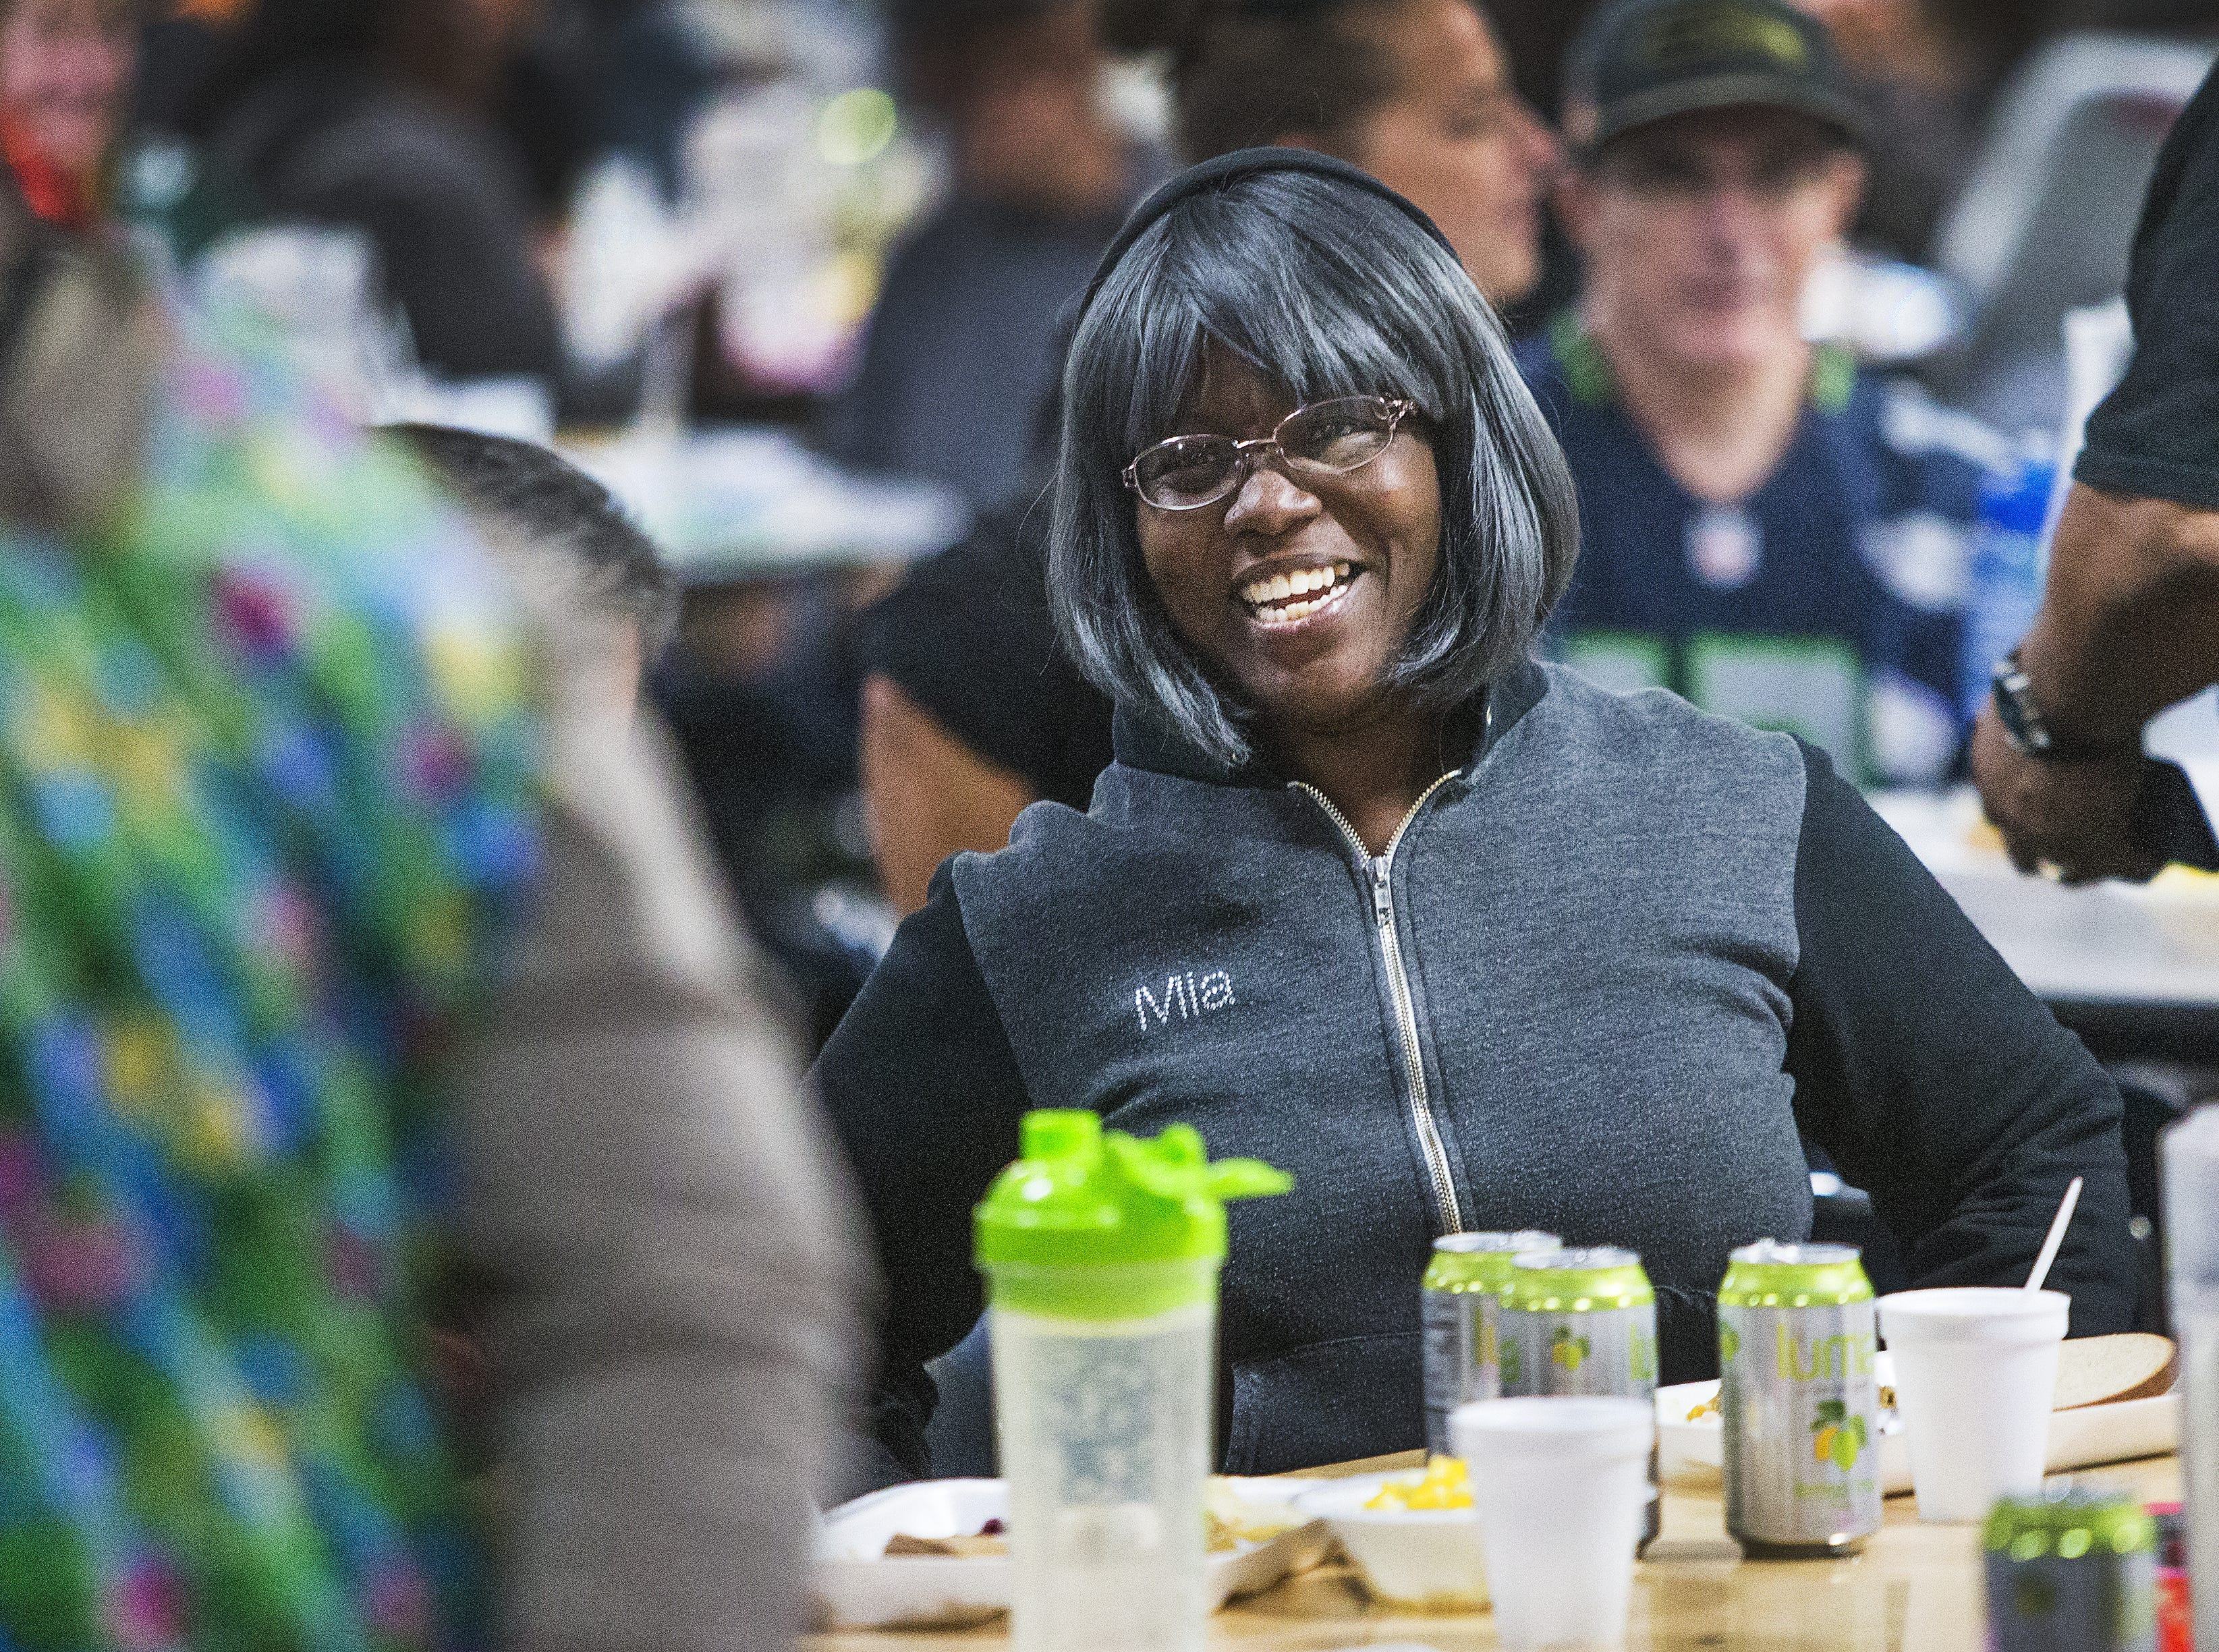 Khadijah Amatullah enjoys the music at the Thanksgiving Day meal served by volunteers with the St. Vincent de Paul Society. Hundreds enjoyed turkey, mashed potatoes and pumpkin pie at the Human Services Campus Dining Room in Phoenix, Thursday, November 22, 2018.